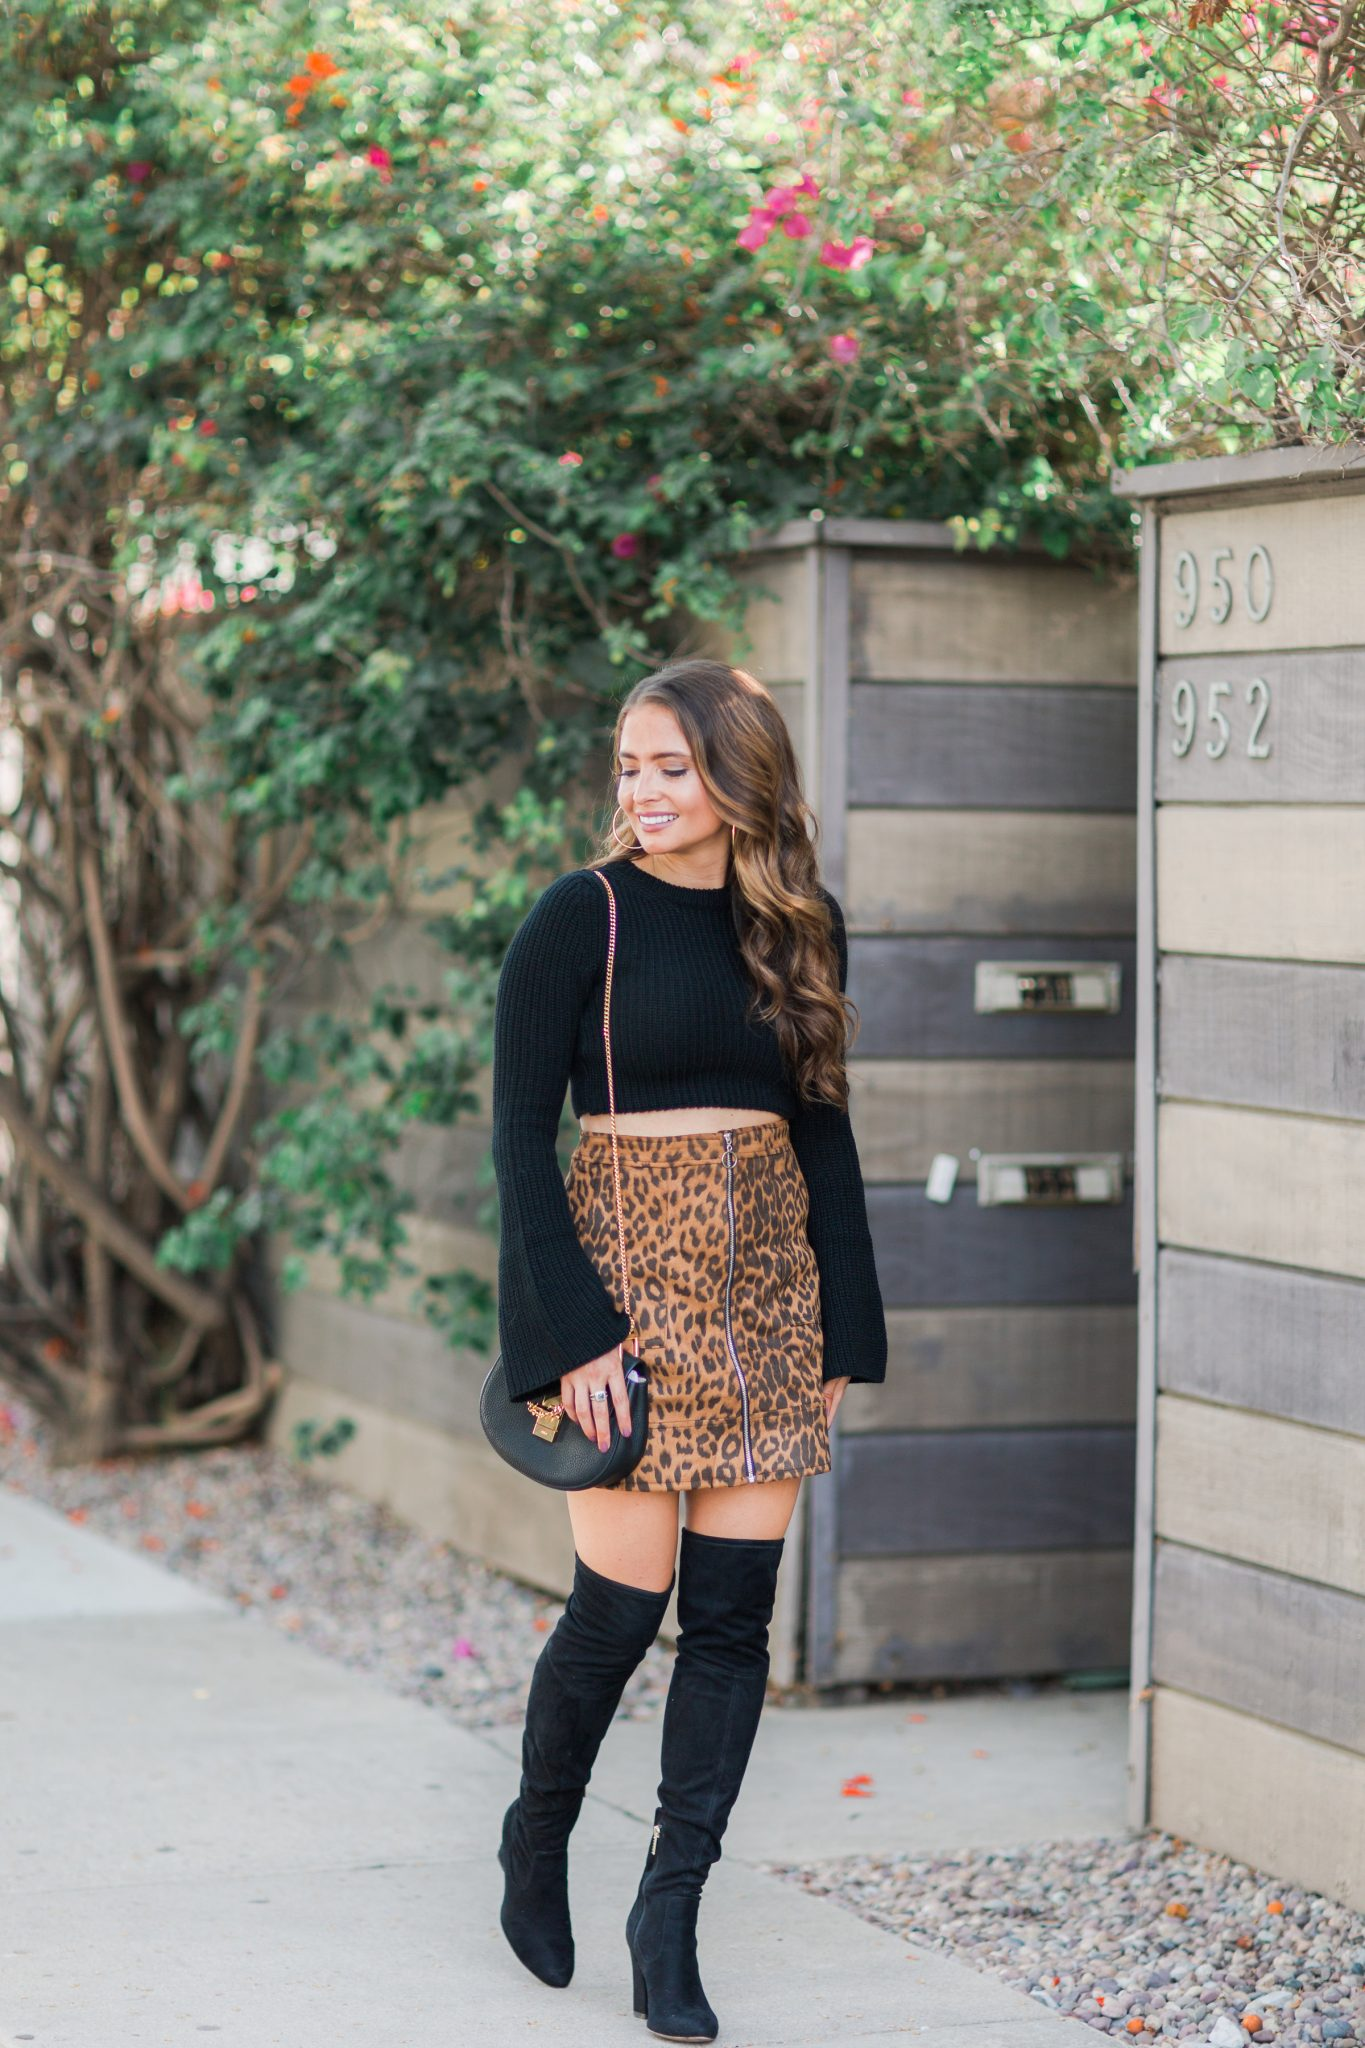 Maxie Elle | Leopard Skirt and OTK Boots - 27 Fun Facts About popular Orange County style blogger Maxie Elise